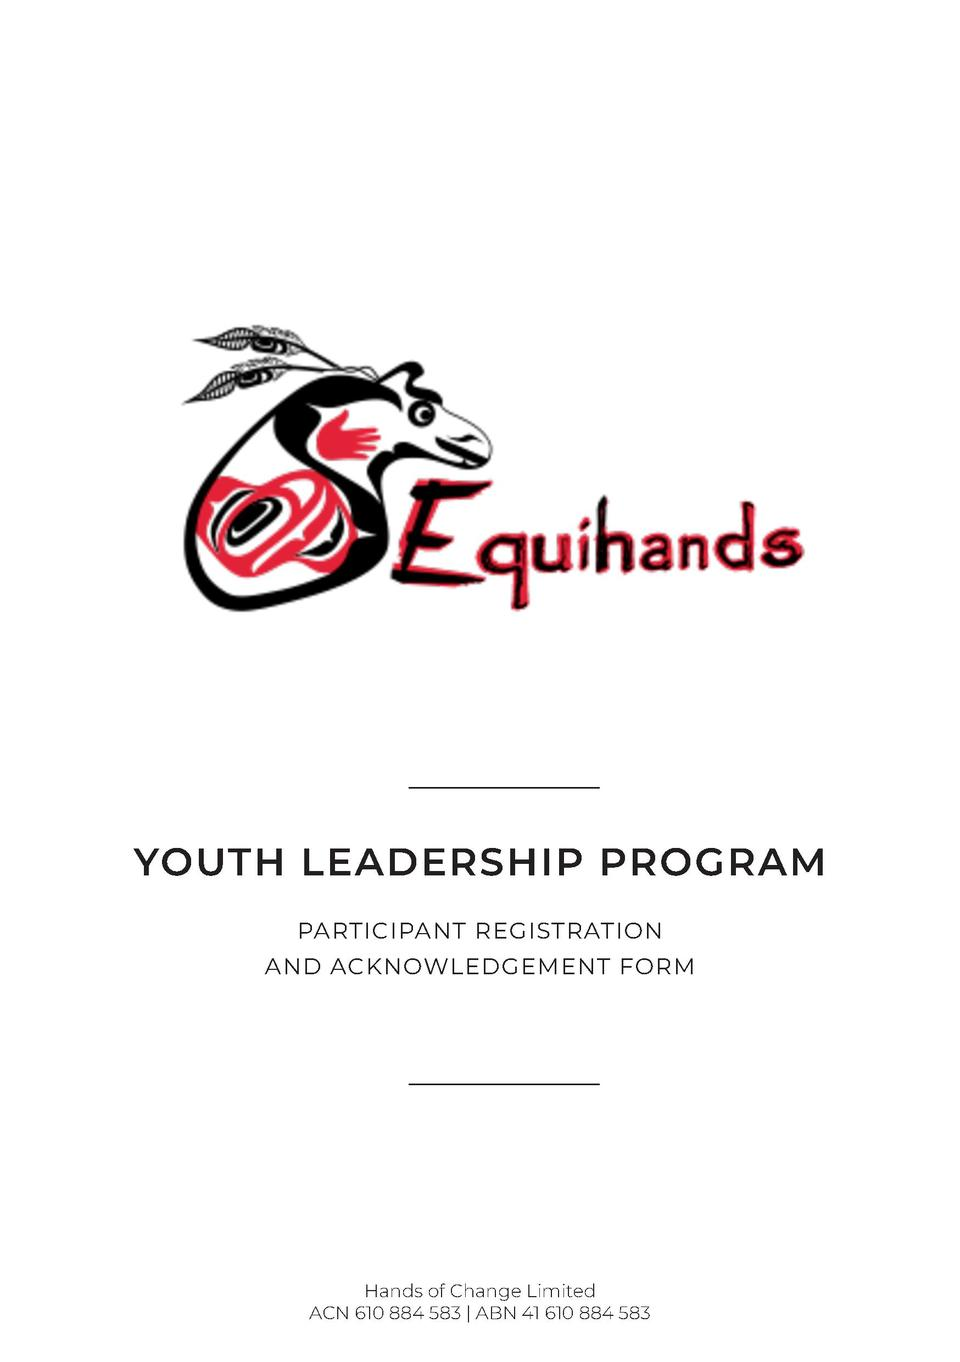 YOUTH LEADERSHIP PROGRAM PARTICIPANT REGISTRATION AND ACKNOWLEDGEMENT FORM  Hands of Change Limited ACN 610 884 583   ABN ...